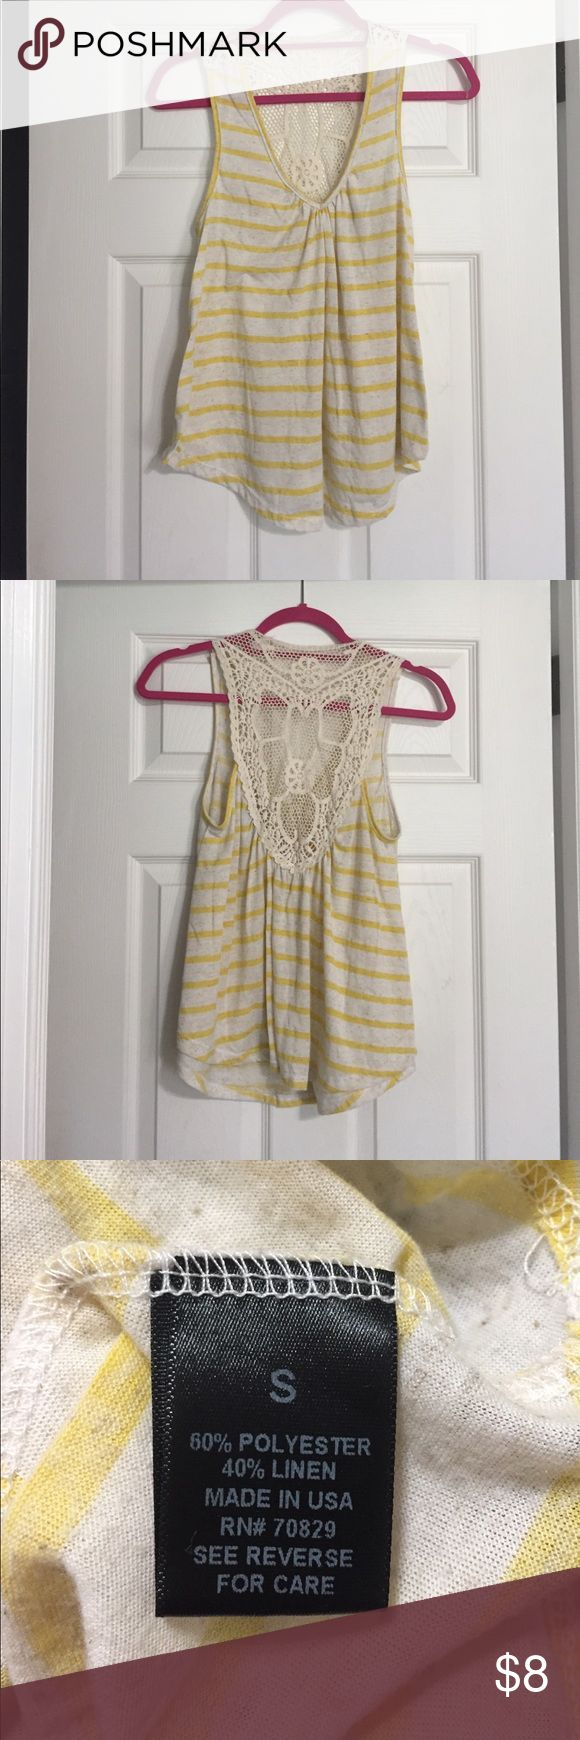 Shirt Bundle! All worn a couple of times, good condition. Buy all 3 together for $10 or comment for different Bundle/single item options. Yellow stripe and floral shirt both purchased from kohls. Mint chevron shirt purchased from rue 21. Floral is an XS but fits like a small. All others are smalls Tops Tank Tops